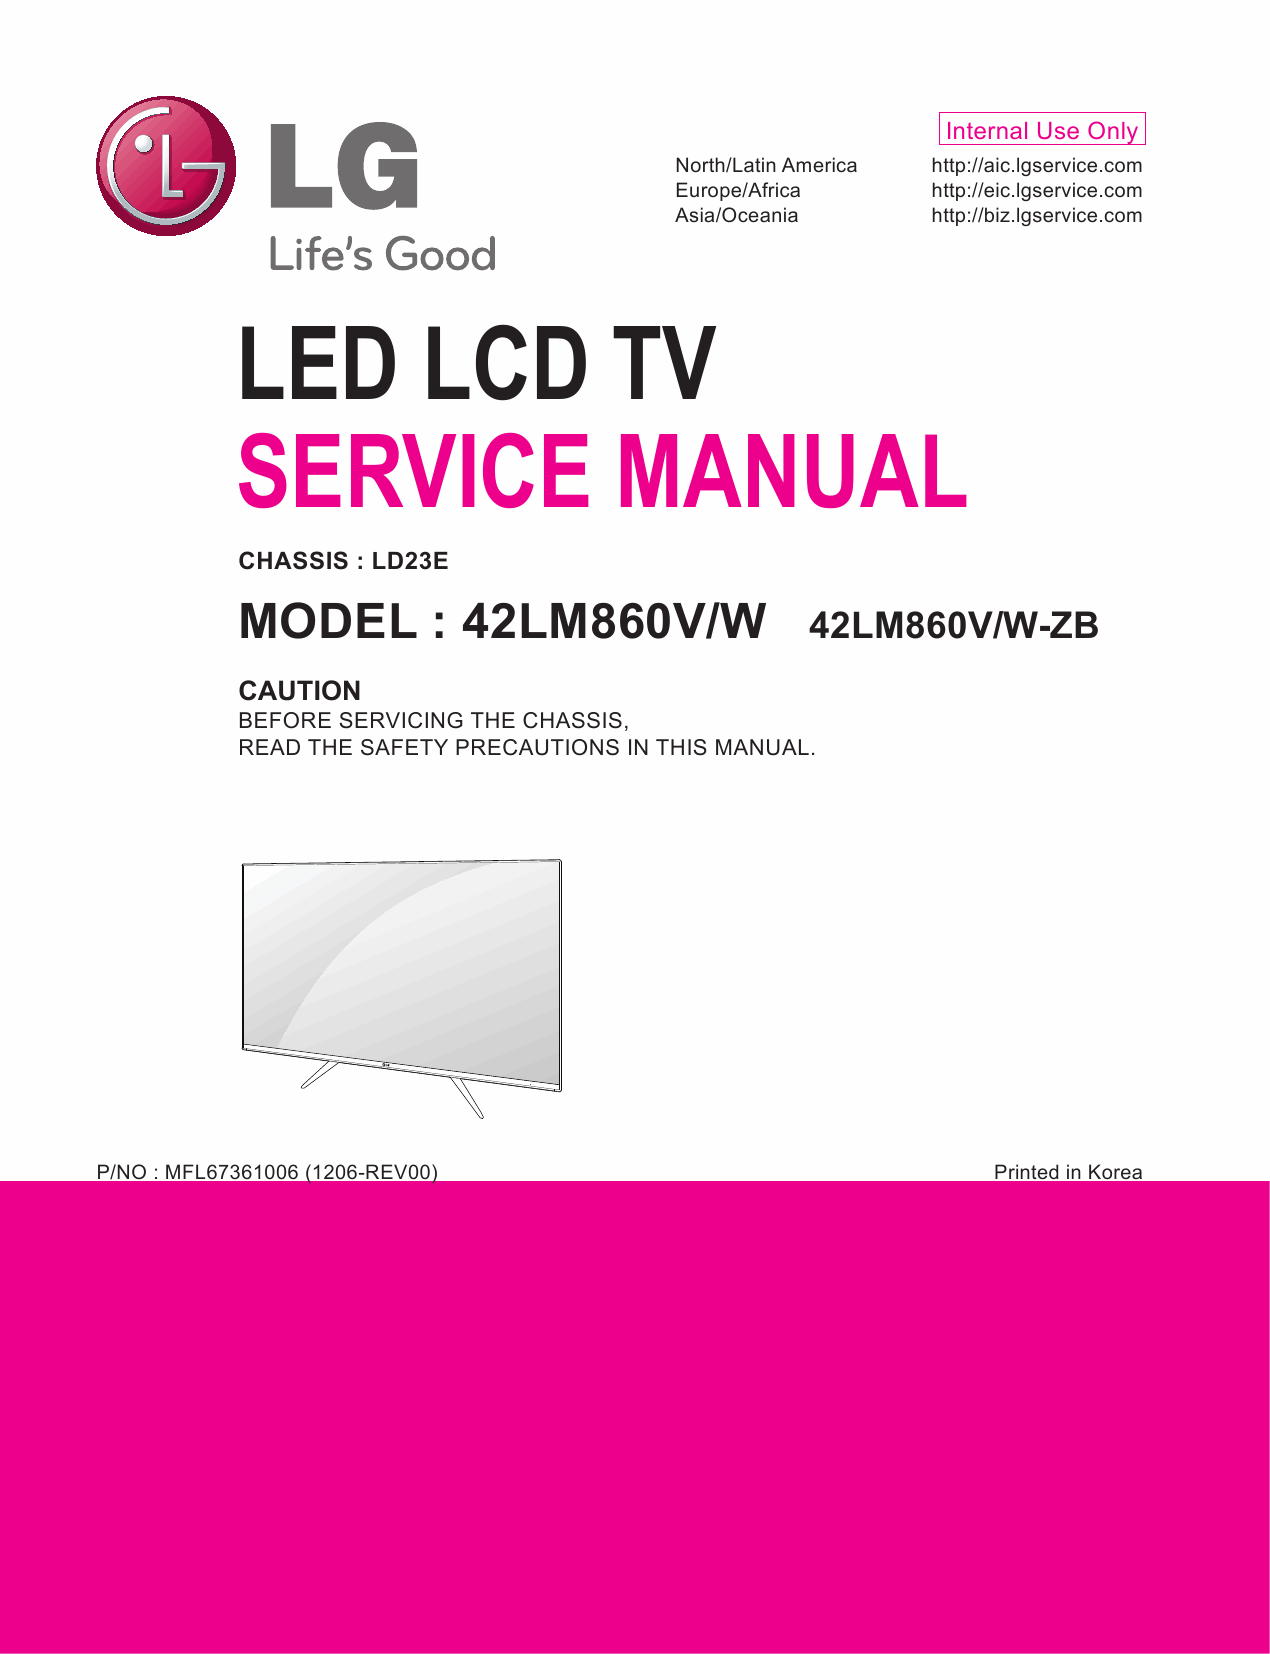 LG_LCD_TV_42LM860V_860W_Service_Manual_2012_Qmanual.com-1